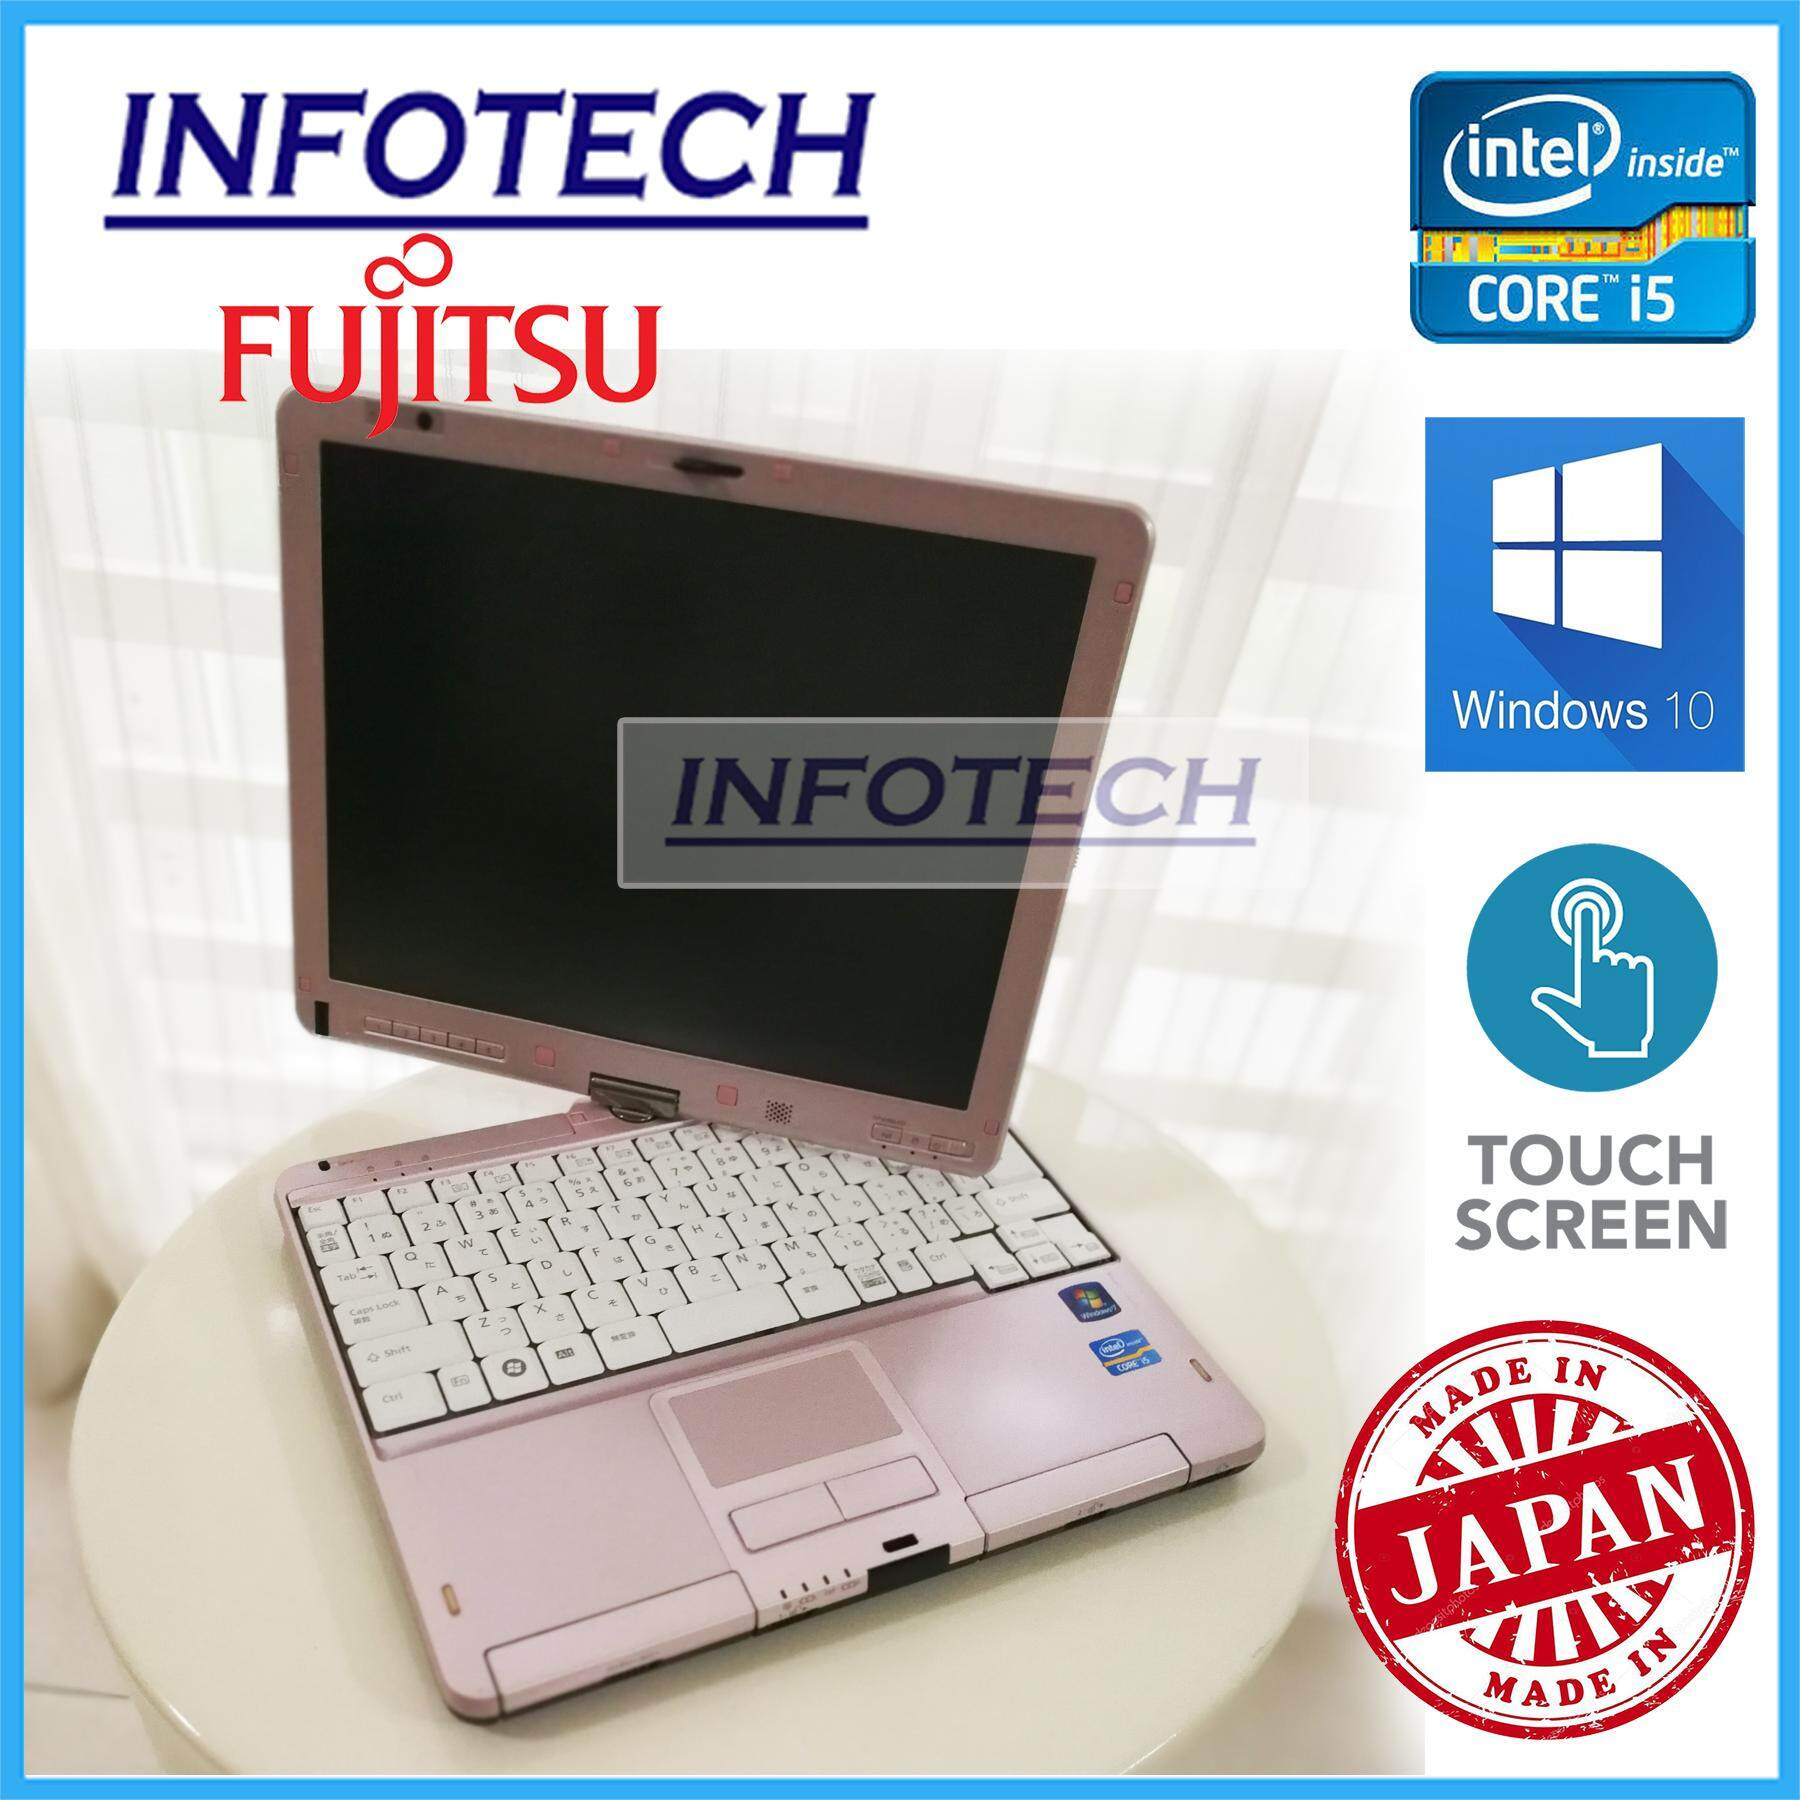 Fujitsu LifeBook T1 - 12.5 - Intel Core i5 2nd gen - 2GB RAM - 30SSD (TOUCH SCREEN) Malaysia